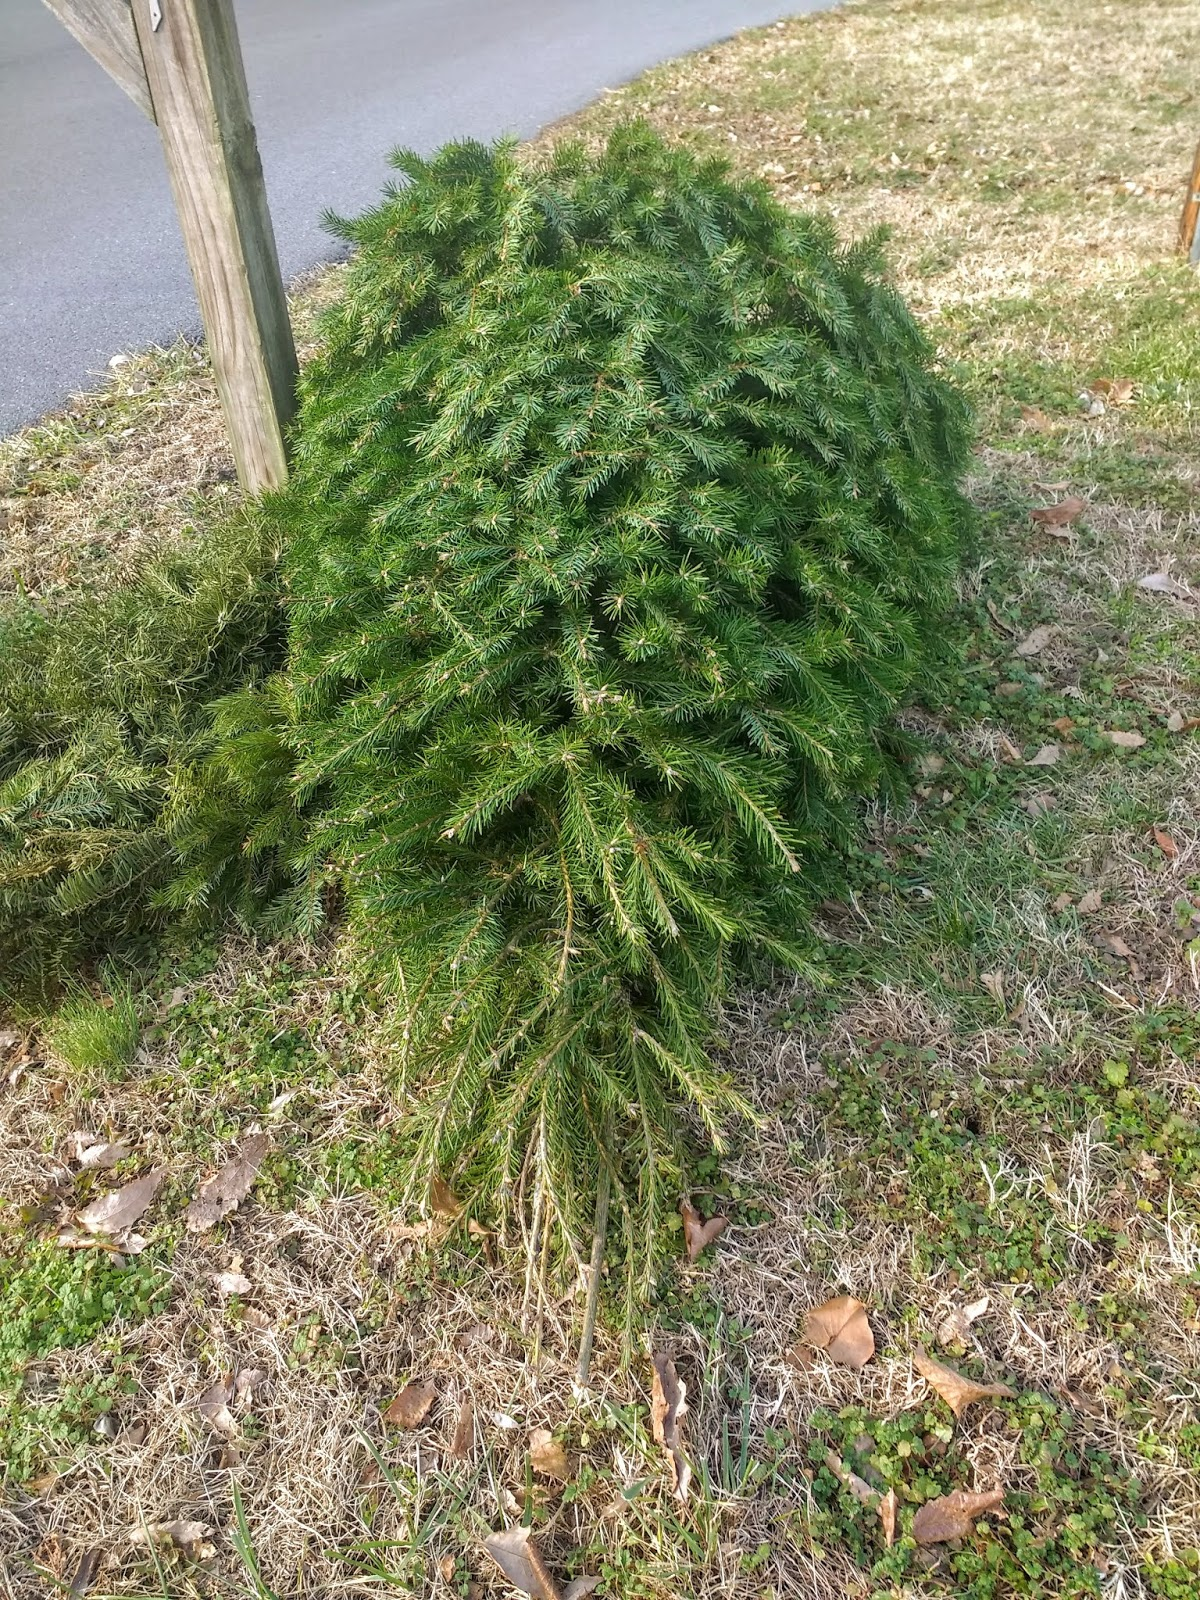 Getting Rid Of The Christmas Tree Ain't All That Bad